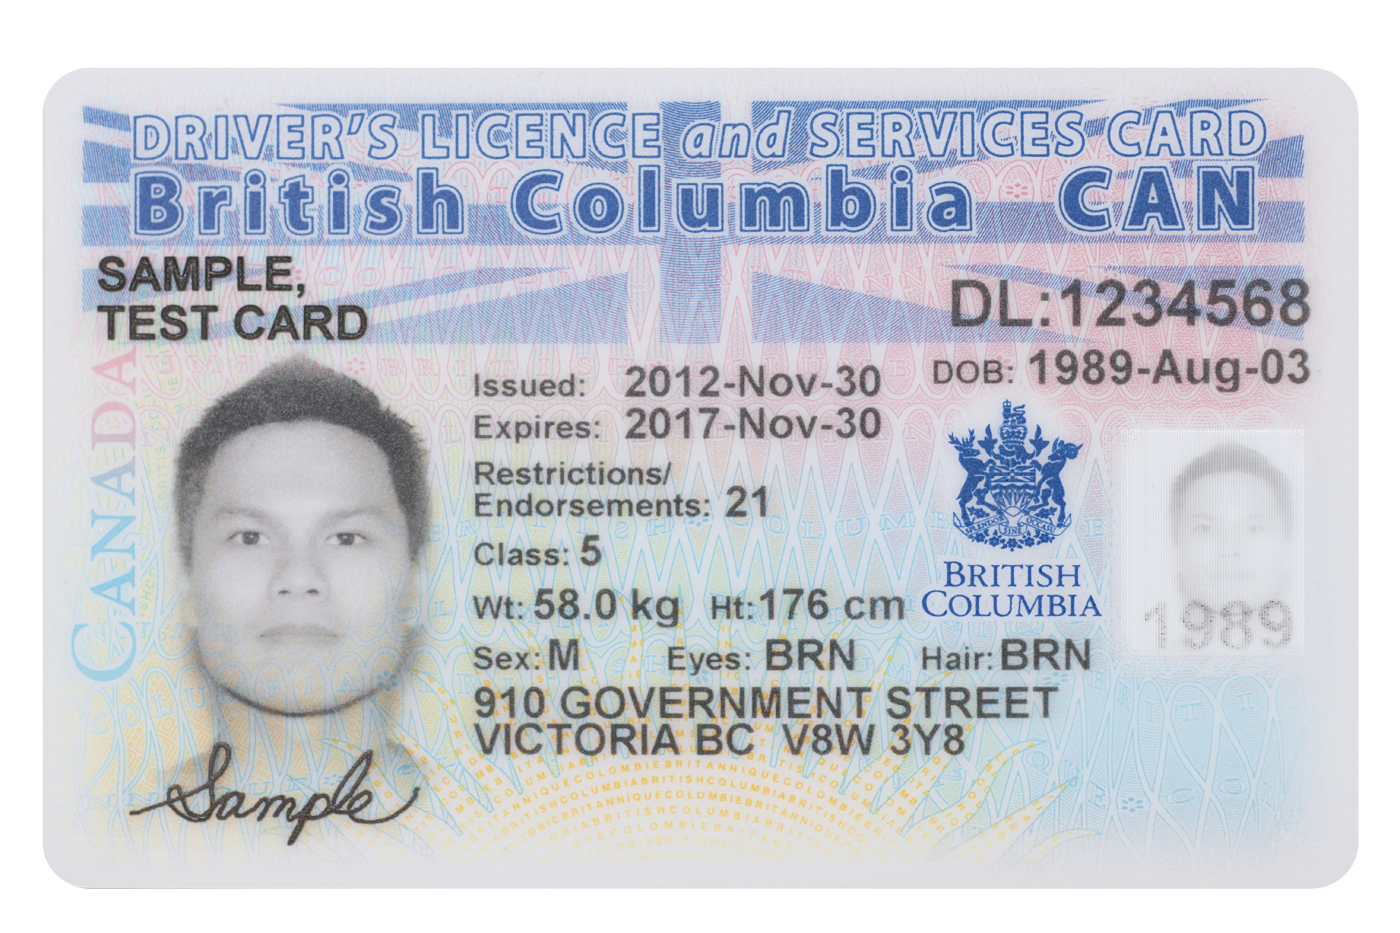 new Care Card and BC Driver's License